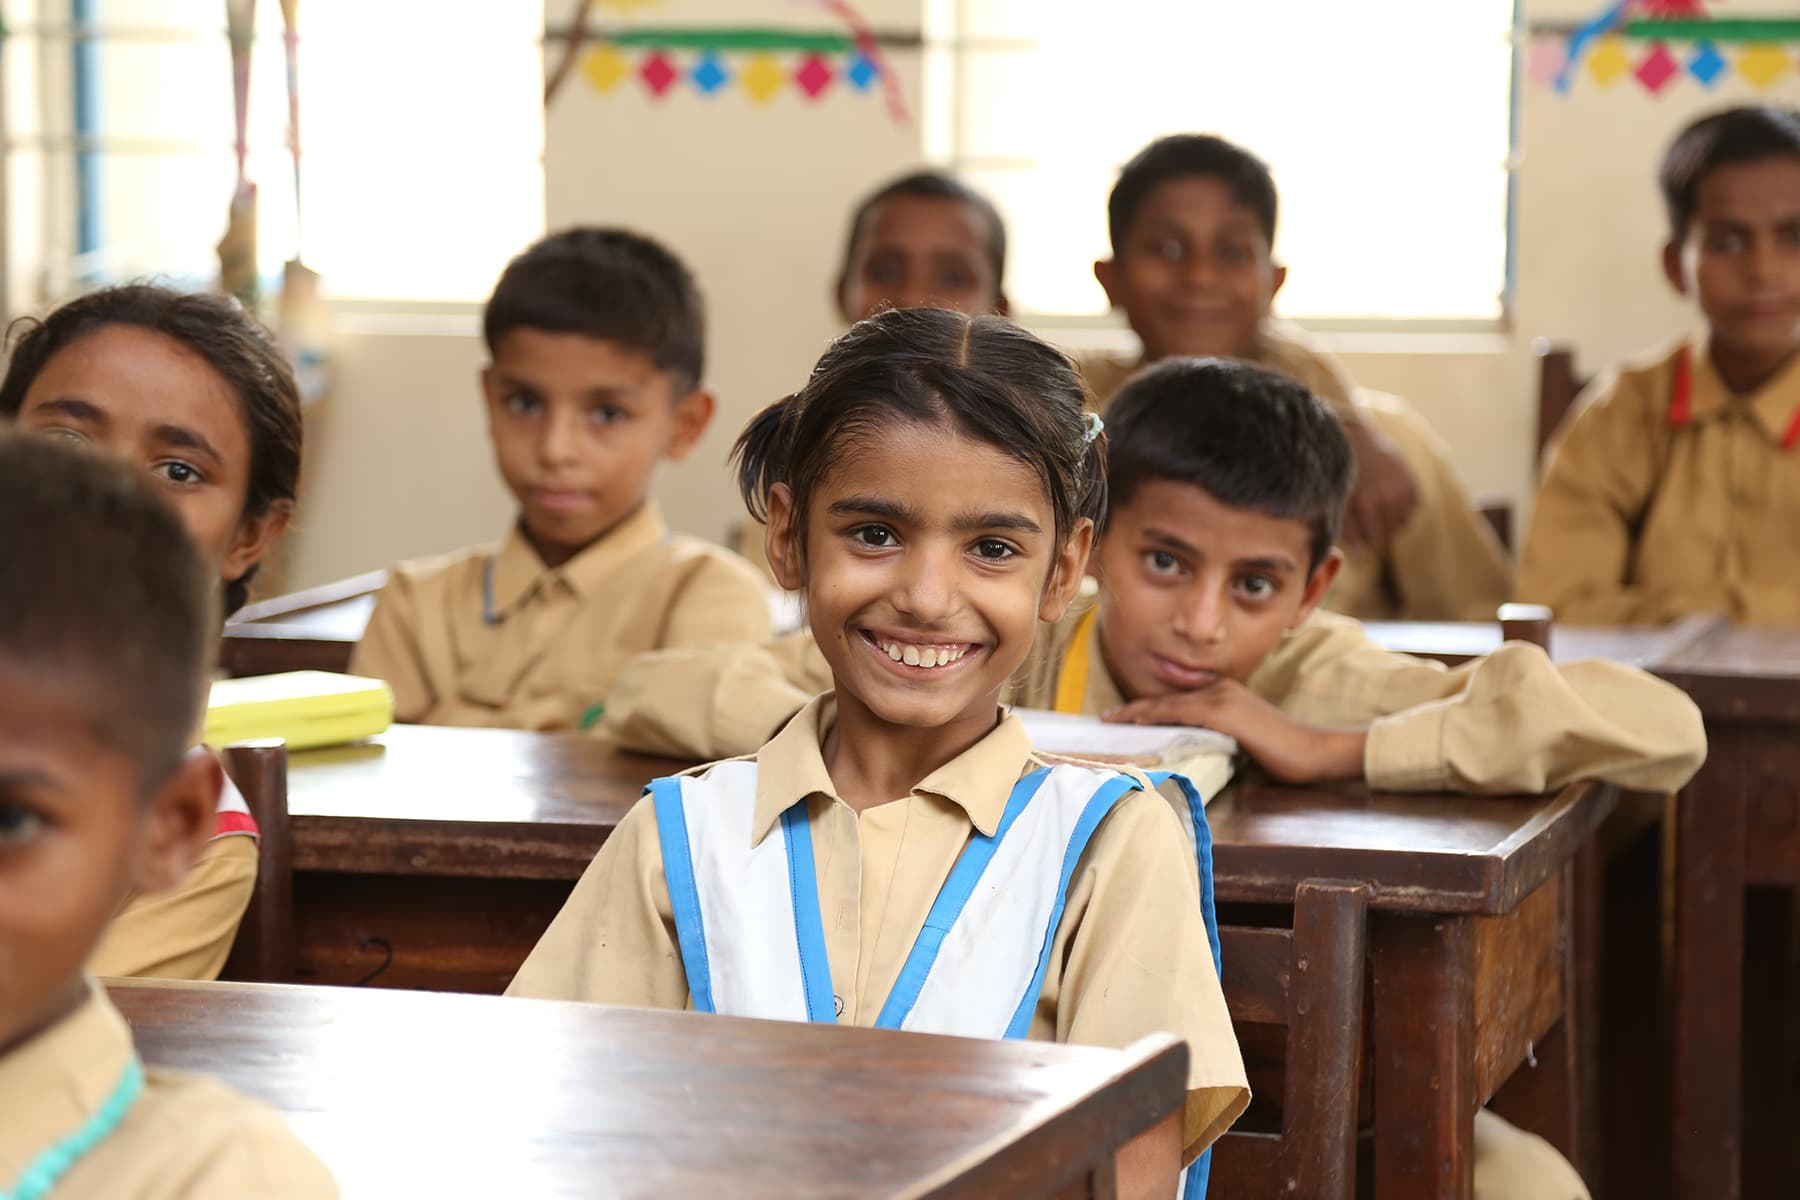 A girl smiles for the camera during a class at the TCF school in Gambat. - Photo by Mustafa Ilyas